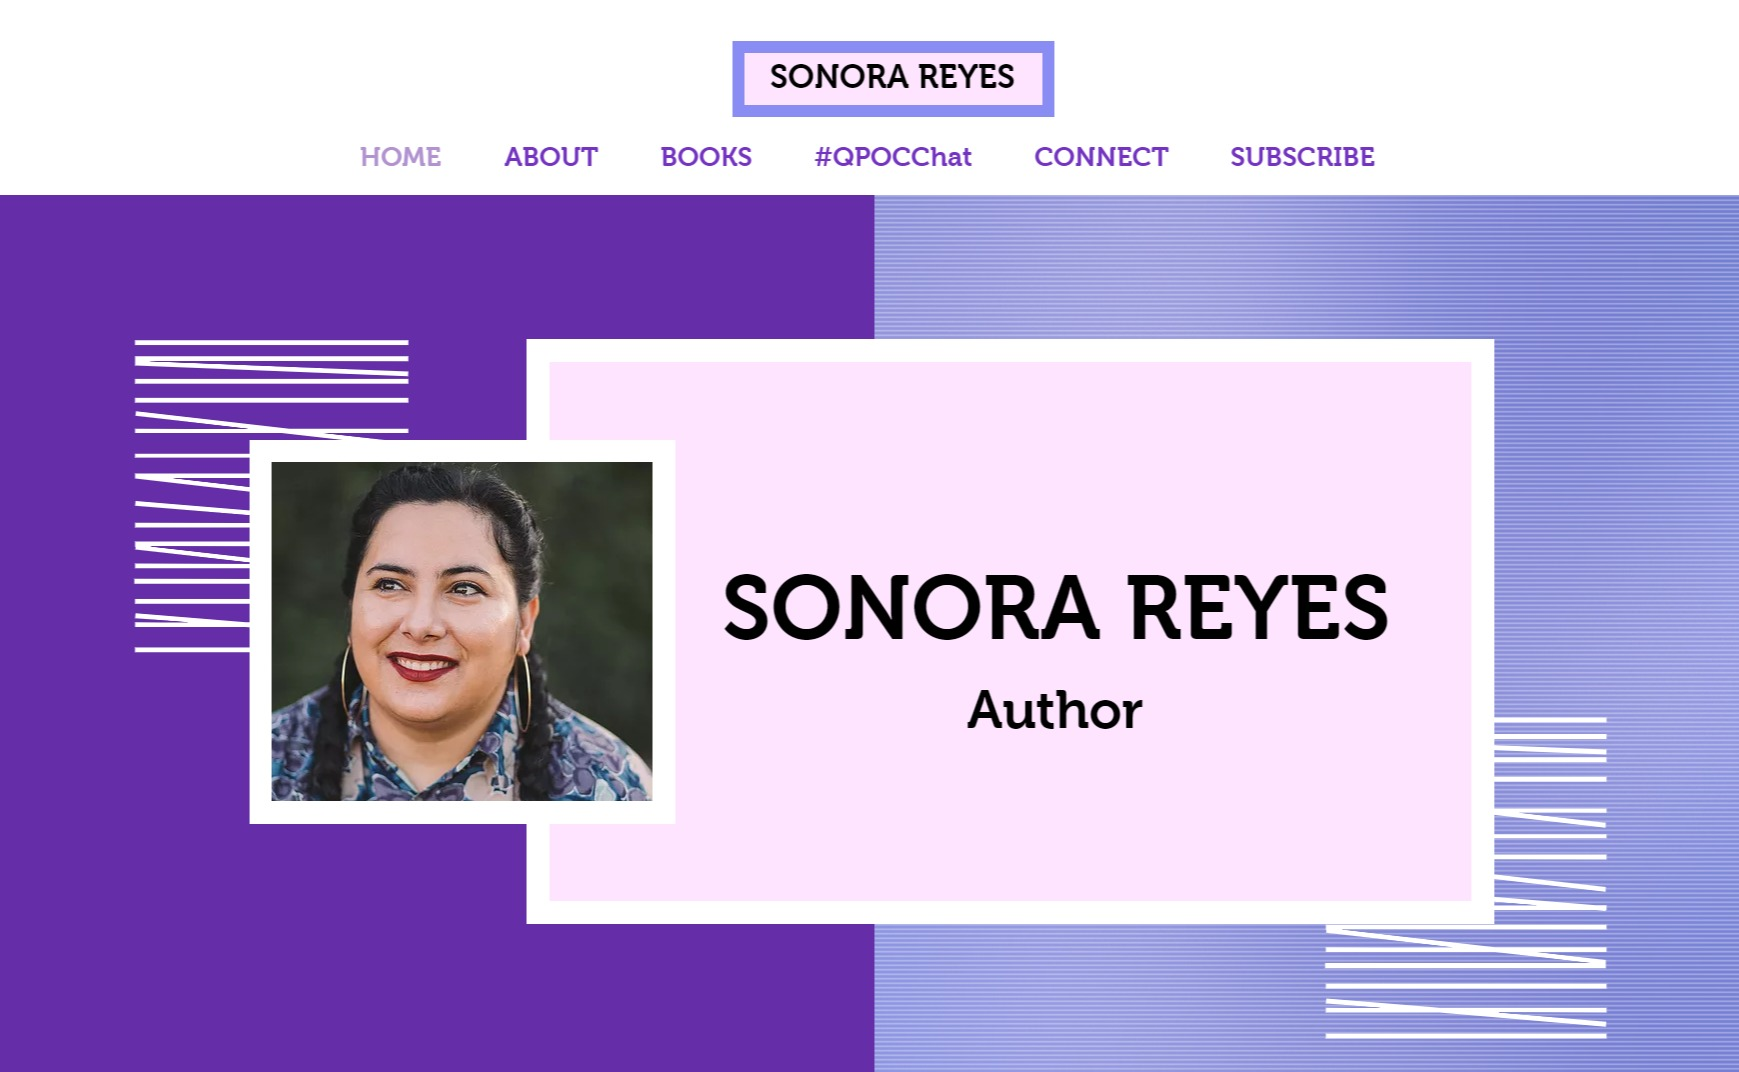 Sonora Reyes Author